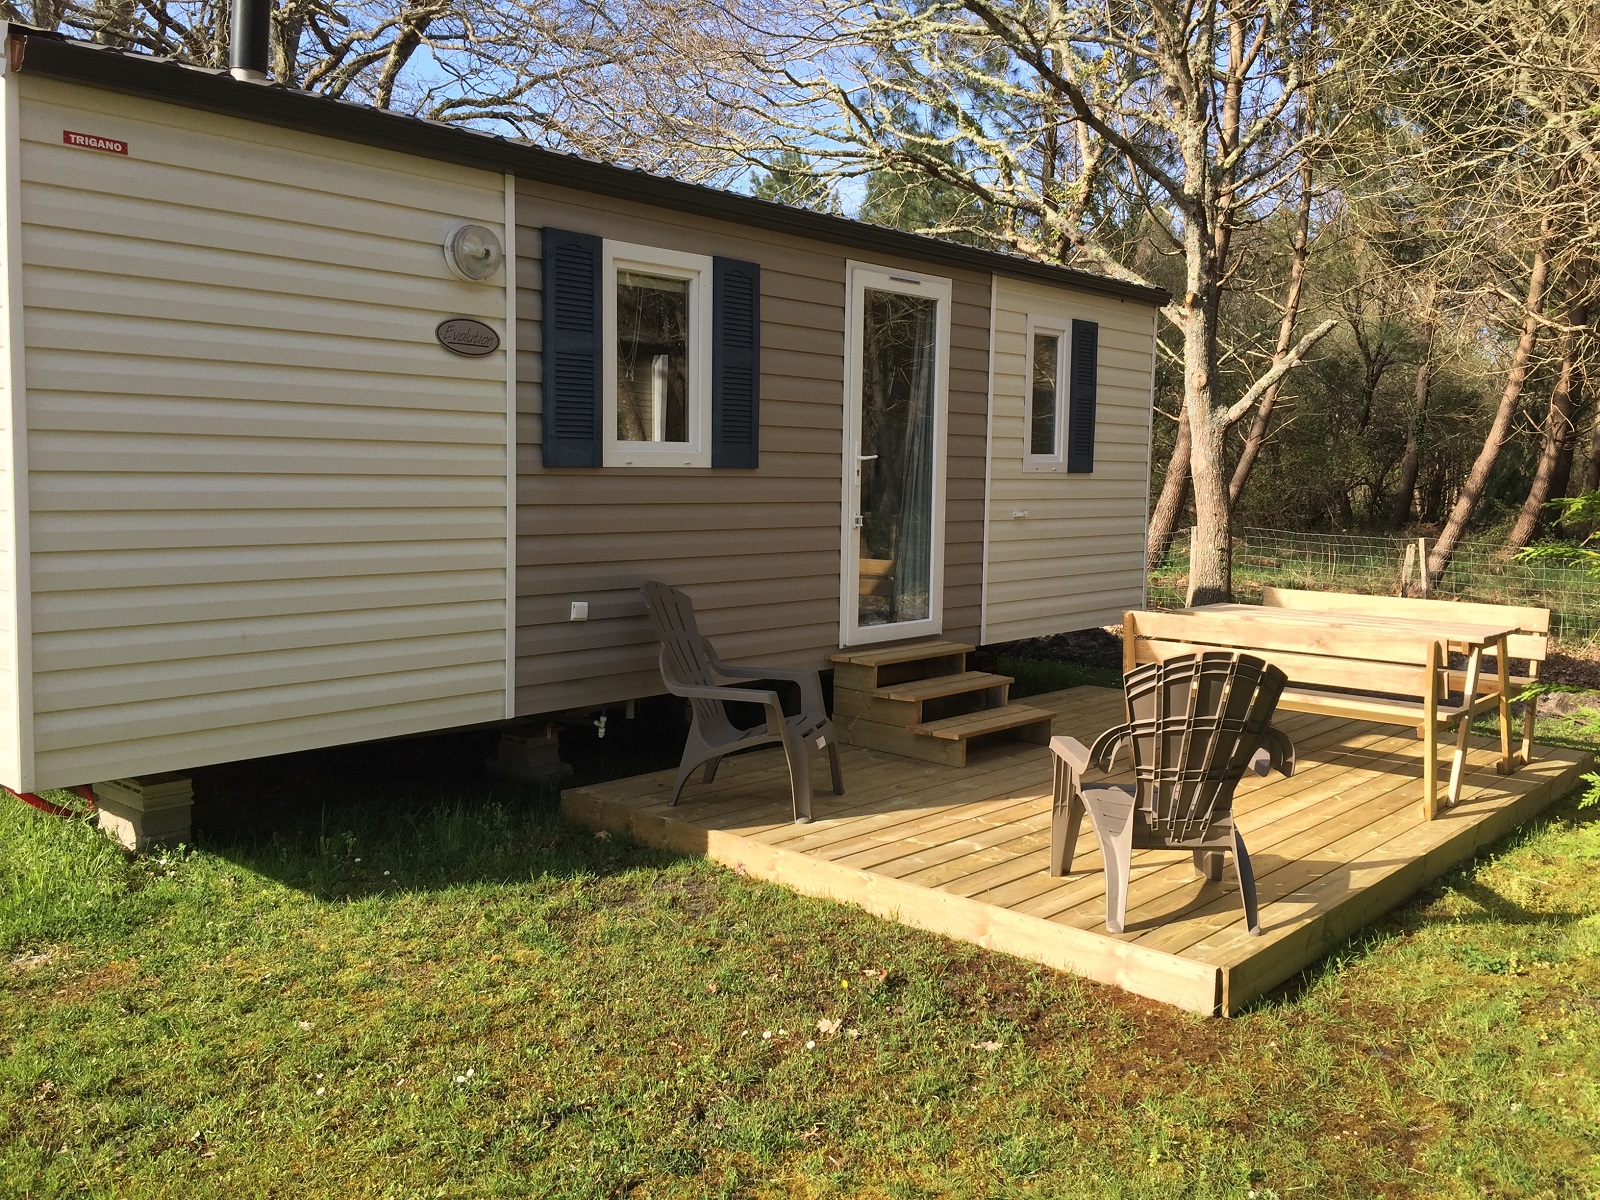 Mobil-home Evolution -camping La Chesnays-nouvelle aquitaine